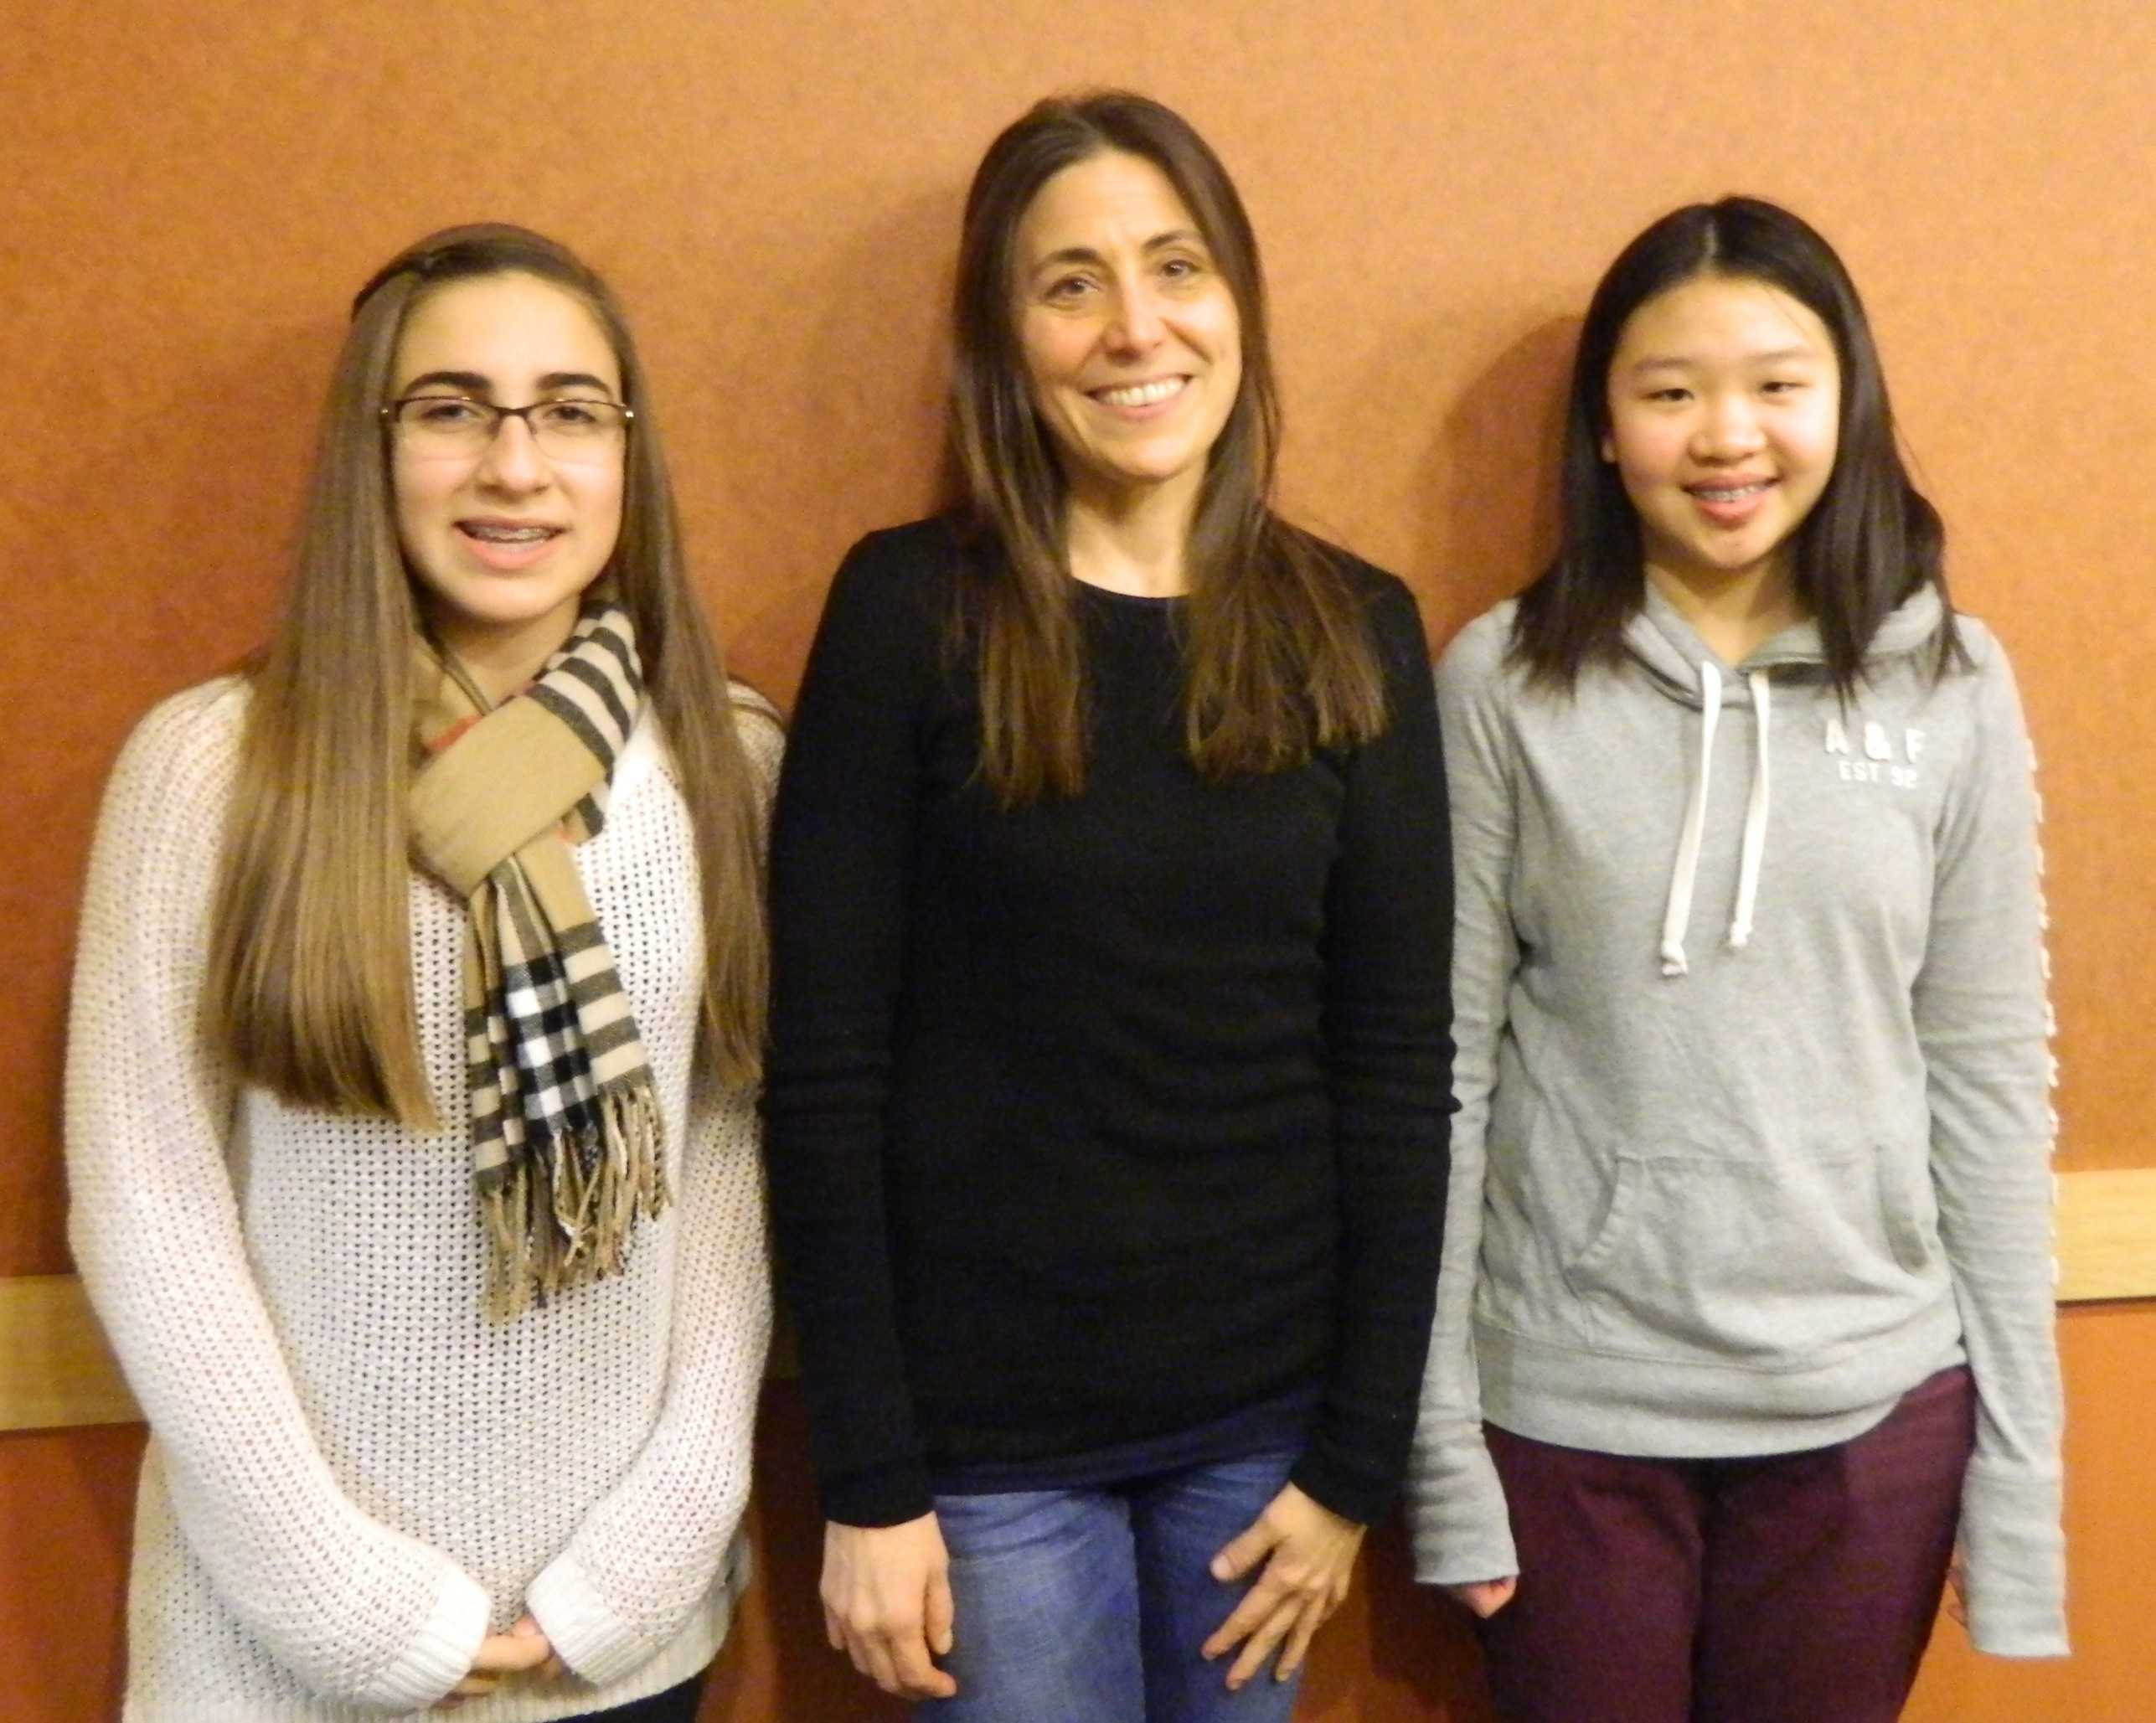 Author Rebecca Stead (center) poses with reporters from the Watertown Splash during a visit to Lesley University in January.